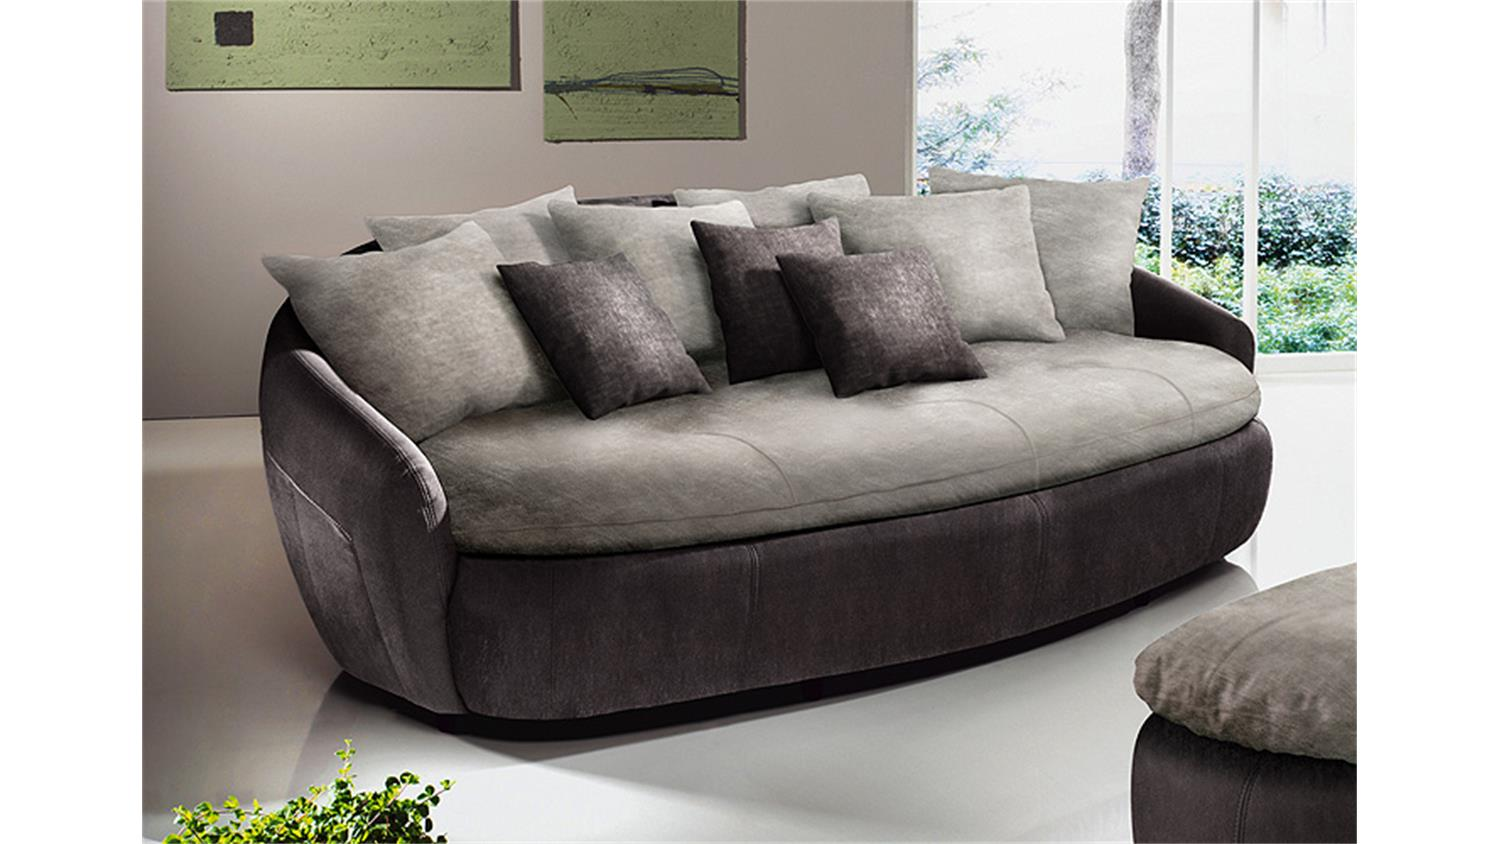 Megasofa crasus 2 sofa in mud braun und elephant grau for Instore mobel martin